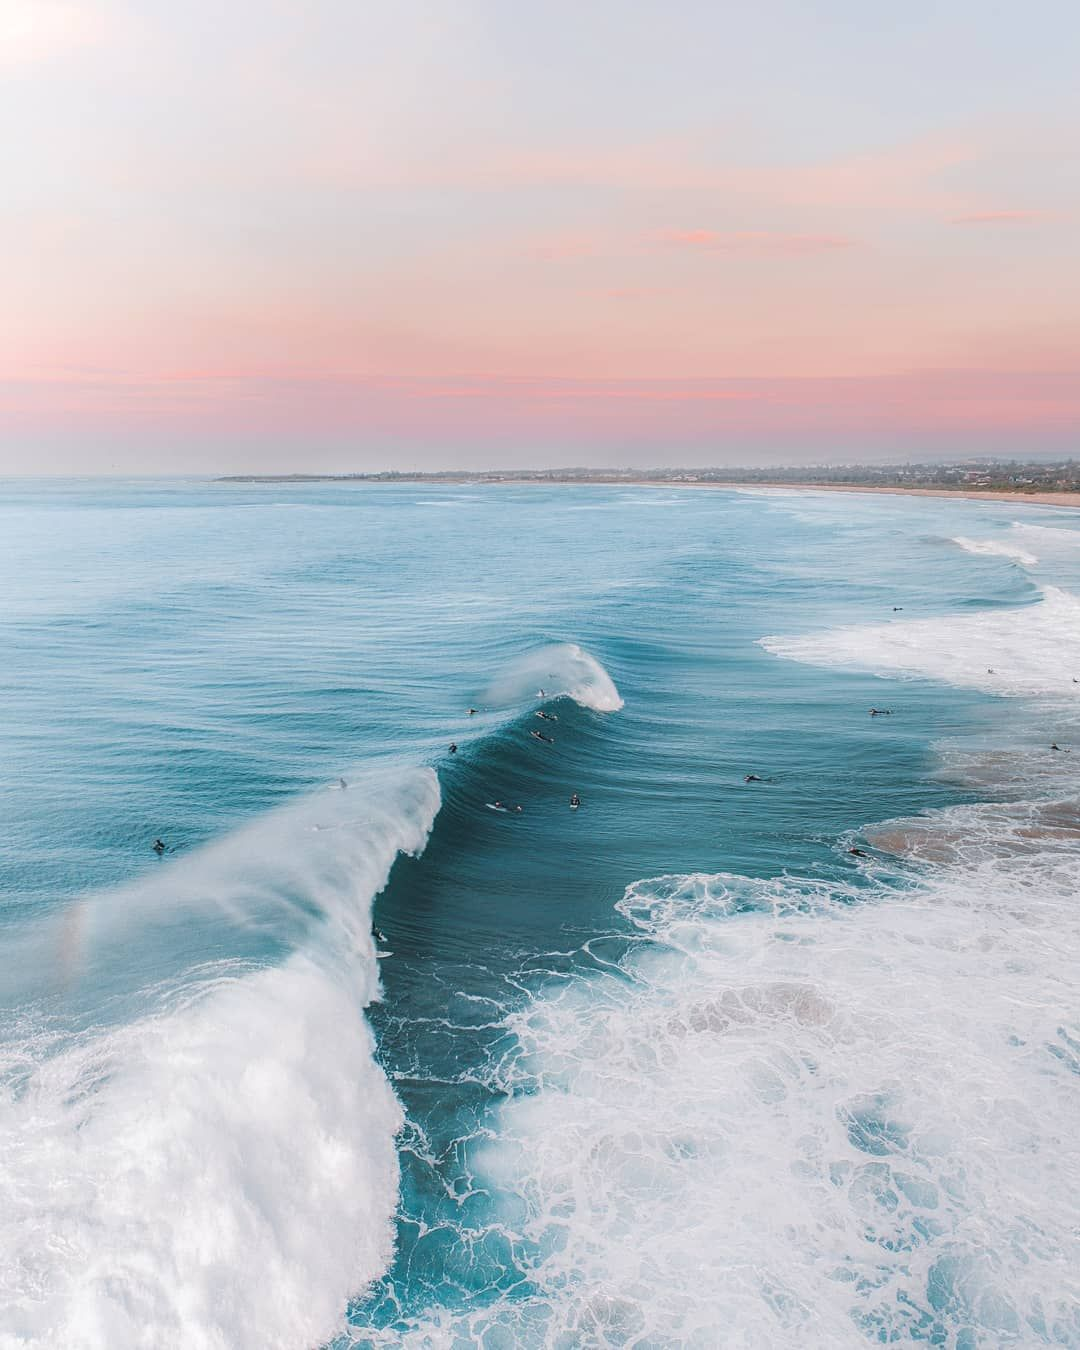 The Creative Series is part of Beach pictures, Beach, Surfing, Ocean, Beach photos, Photography - Drone photographer and creator Ben Mack resides in Sydney, Australia, with his beautiful wife and three children  A passionate Ocean enthusiast, as you will see from his images which are full of spectacular pastel tones and seaside vistas  Enjoy learning more about this talented family man as I inte